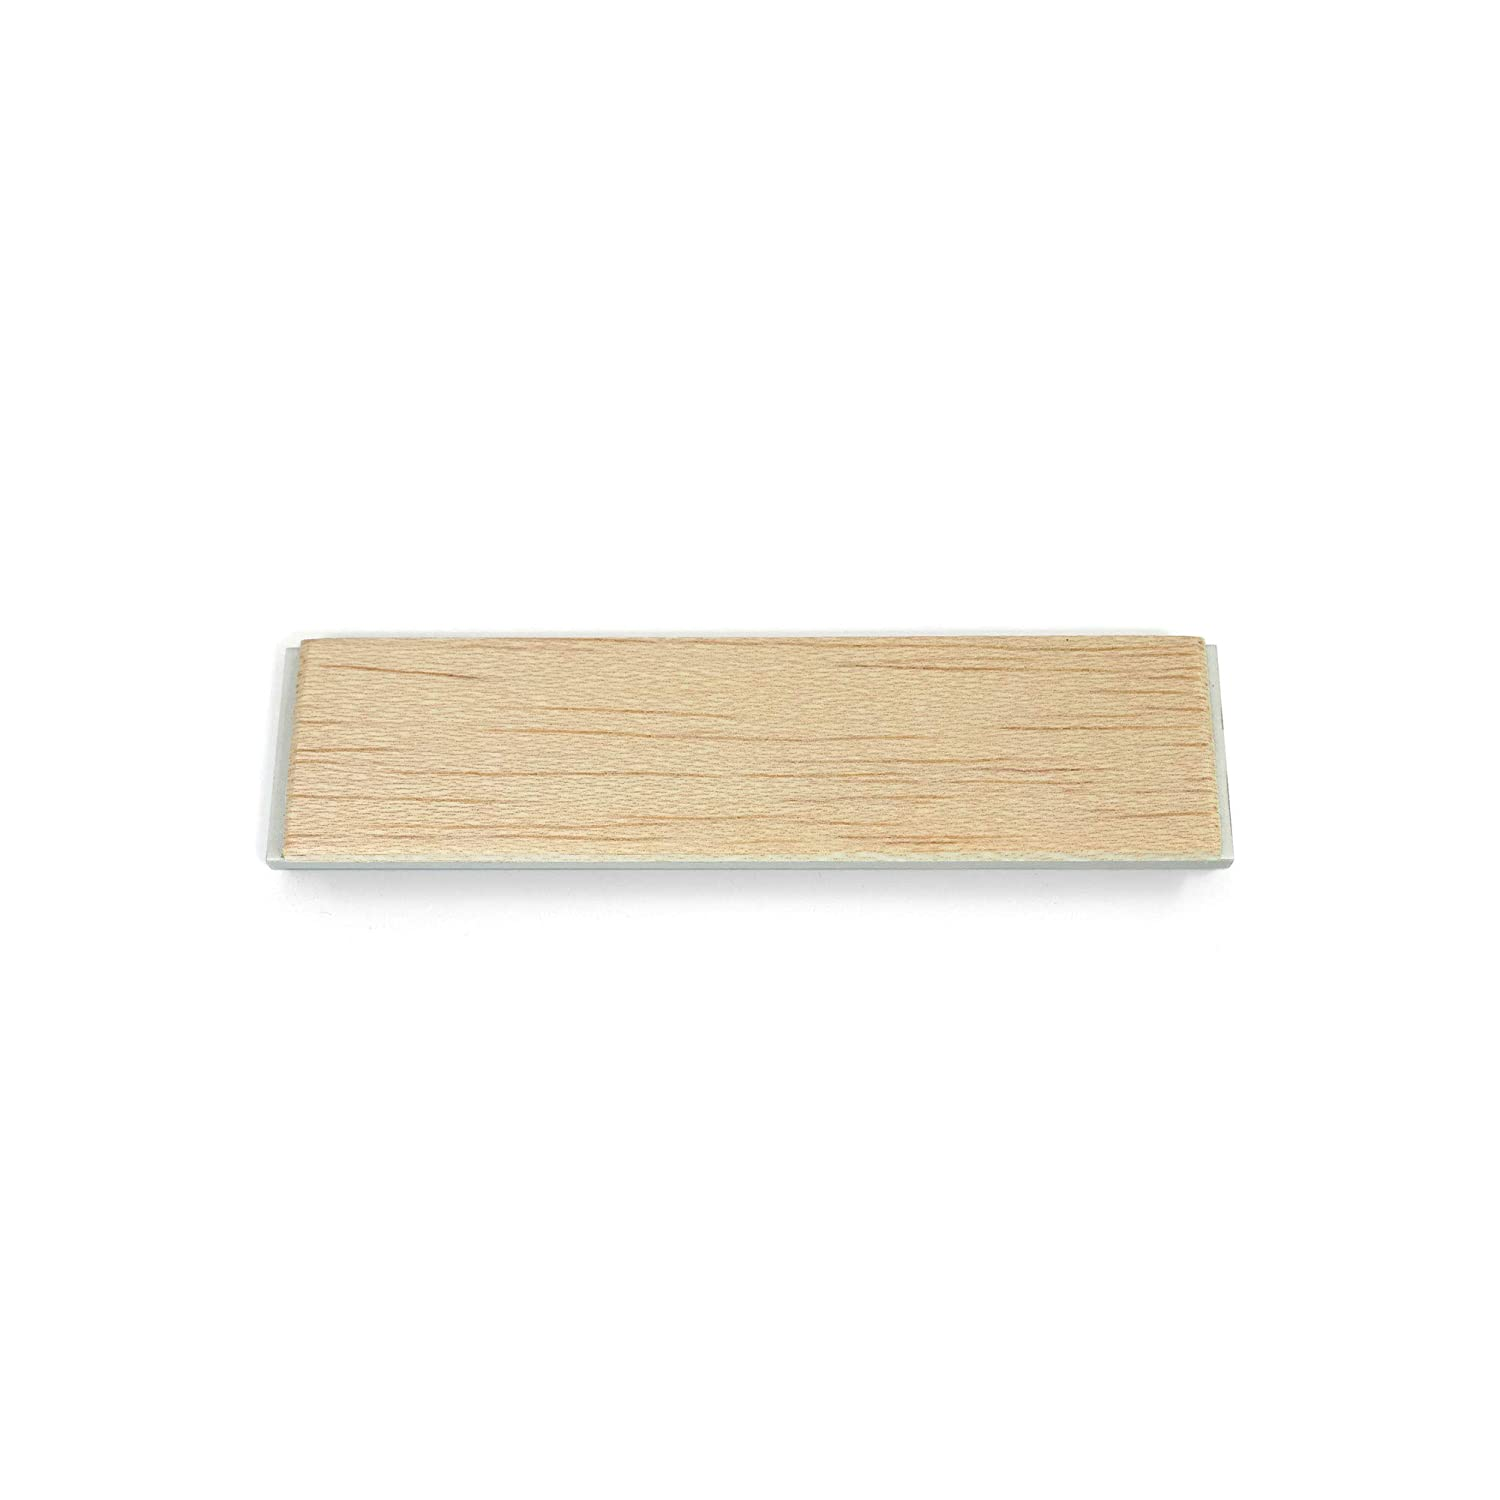 Balsa Strop 4 x 1 with Aluminum Mounting for KME Gritomatic